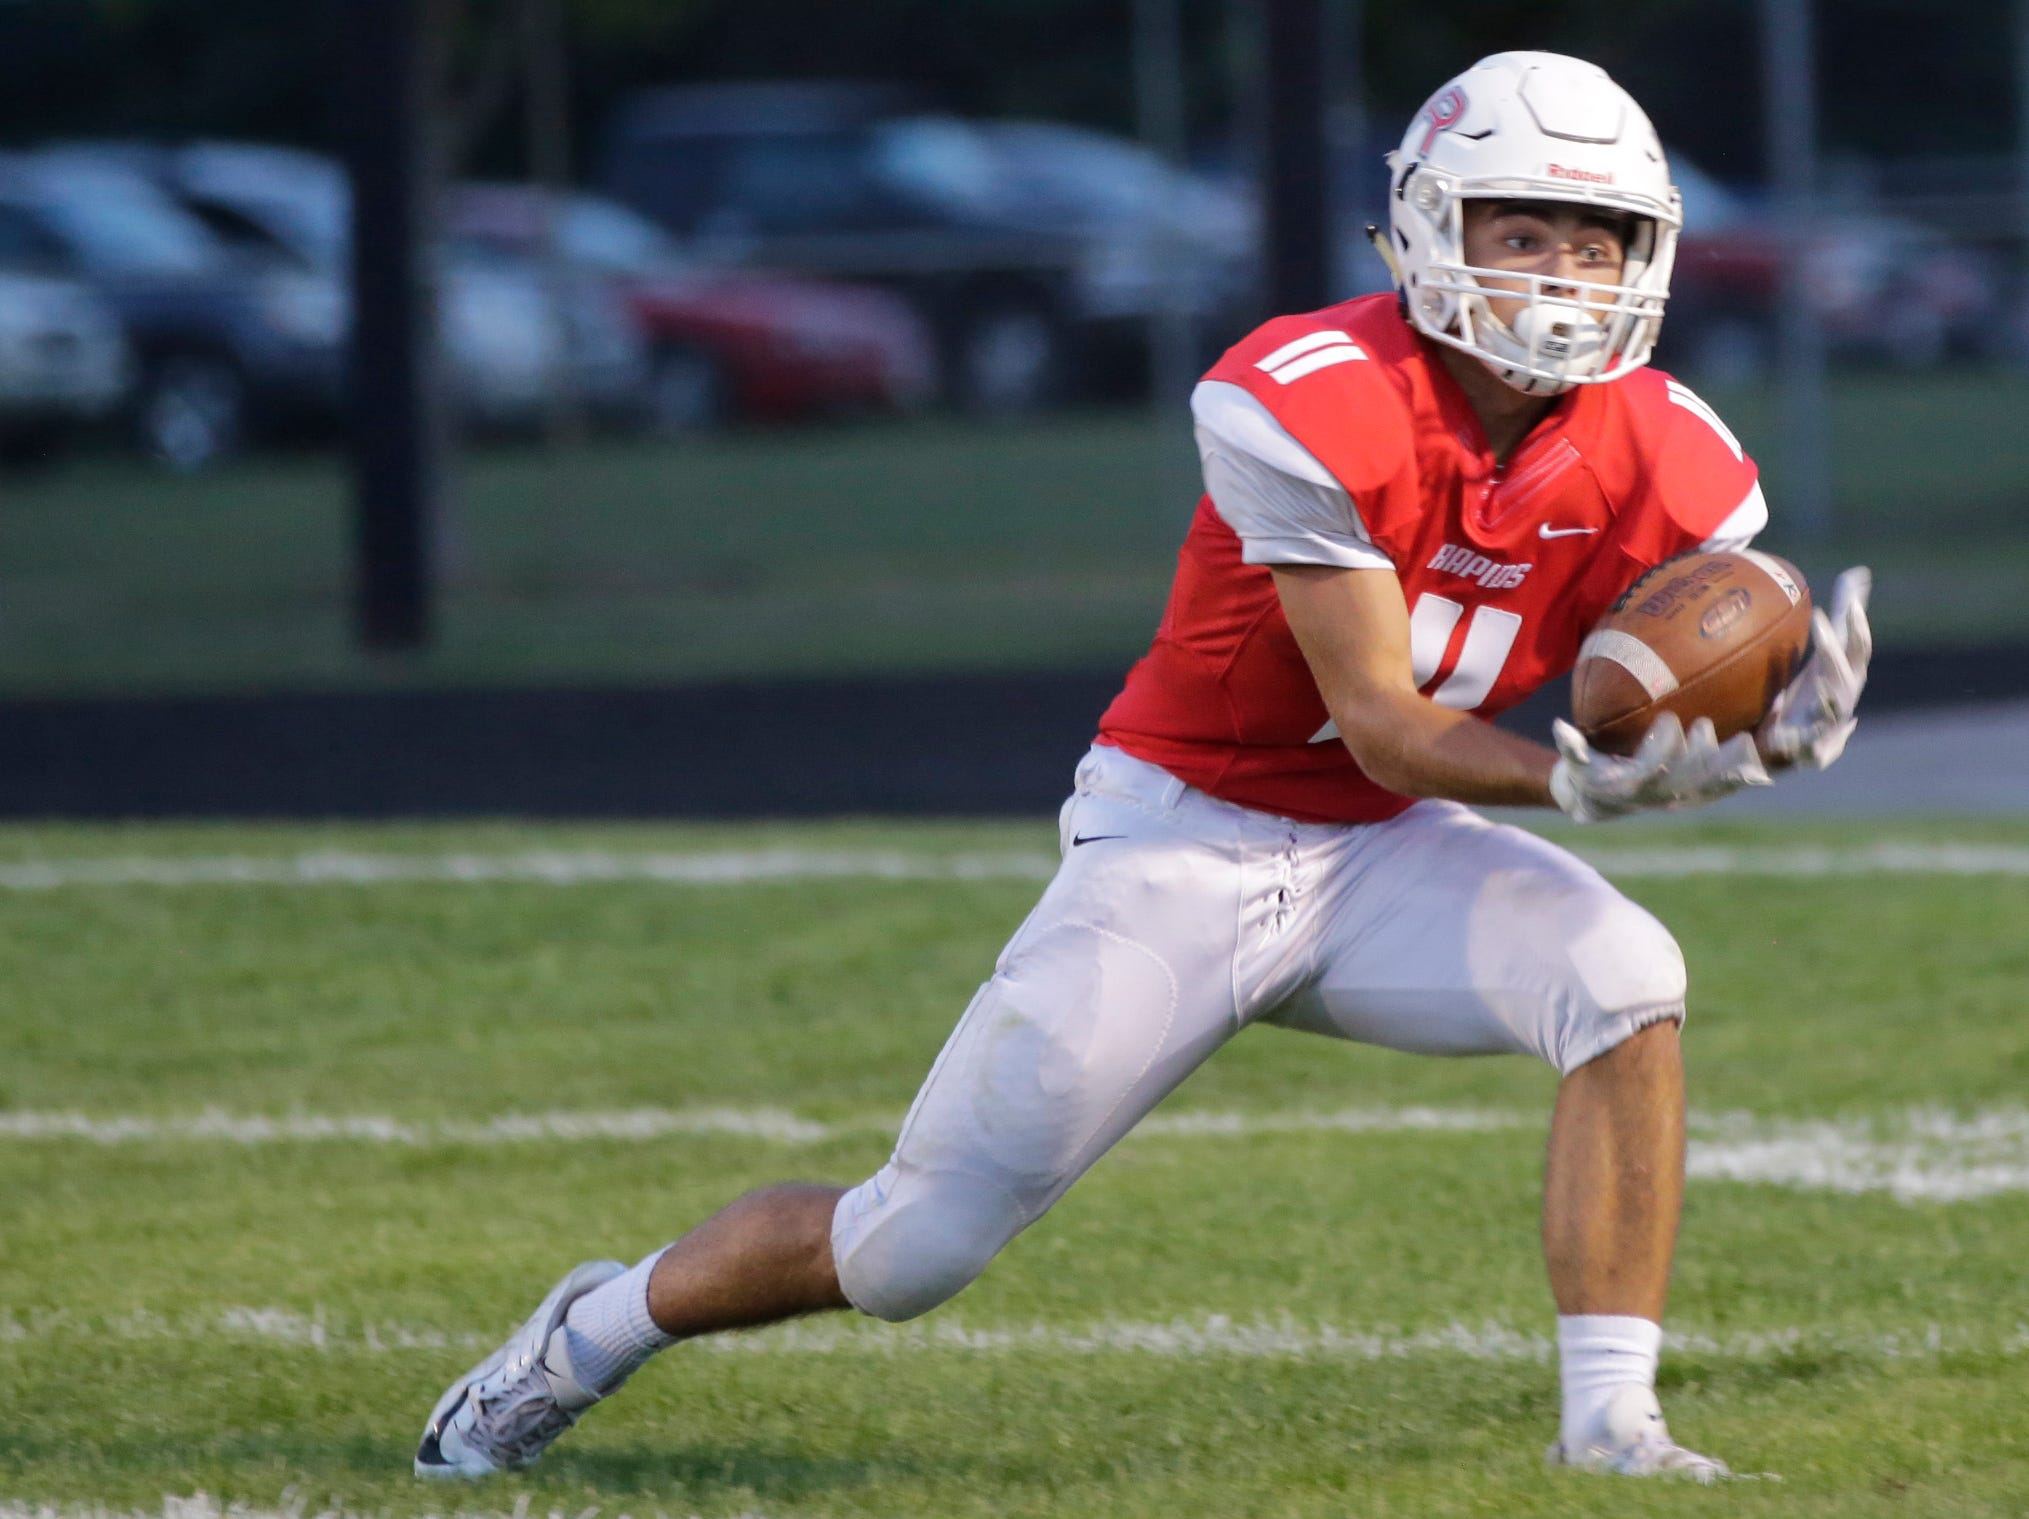 Wisconsin Rapids' Nathan Schooley (11) catches a kick during a game between Wisconsin Rapids and Kimberly at Wisconsin Rapids Lincoln High School Thursday, August 23, 2018.